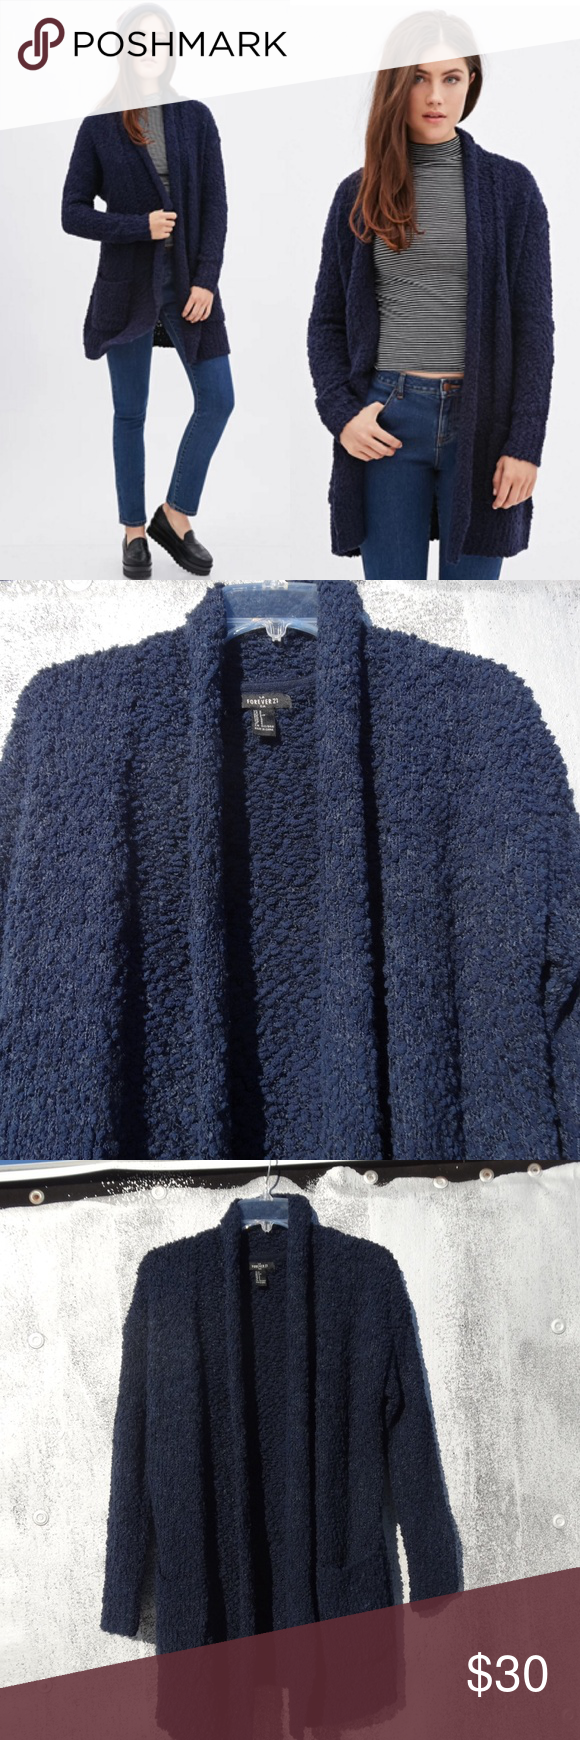 Chunky Knit Longline Cardigan. Open front cardigan in an excellent condition. Only worn once. Forever 21 Sweaters Cardigans